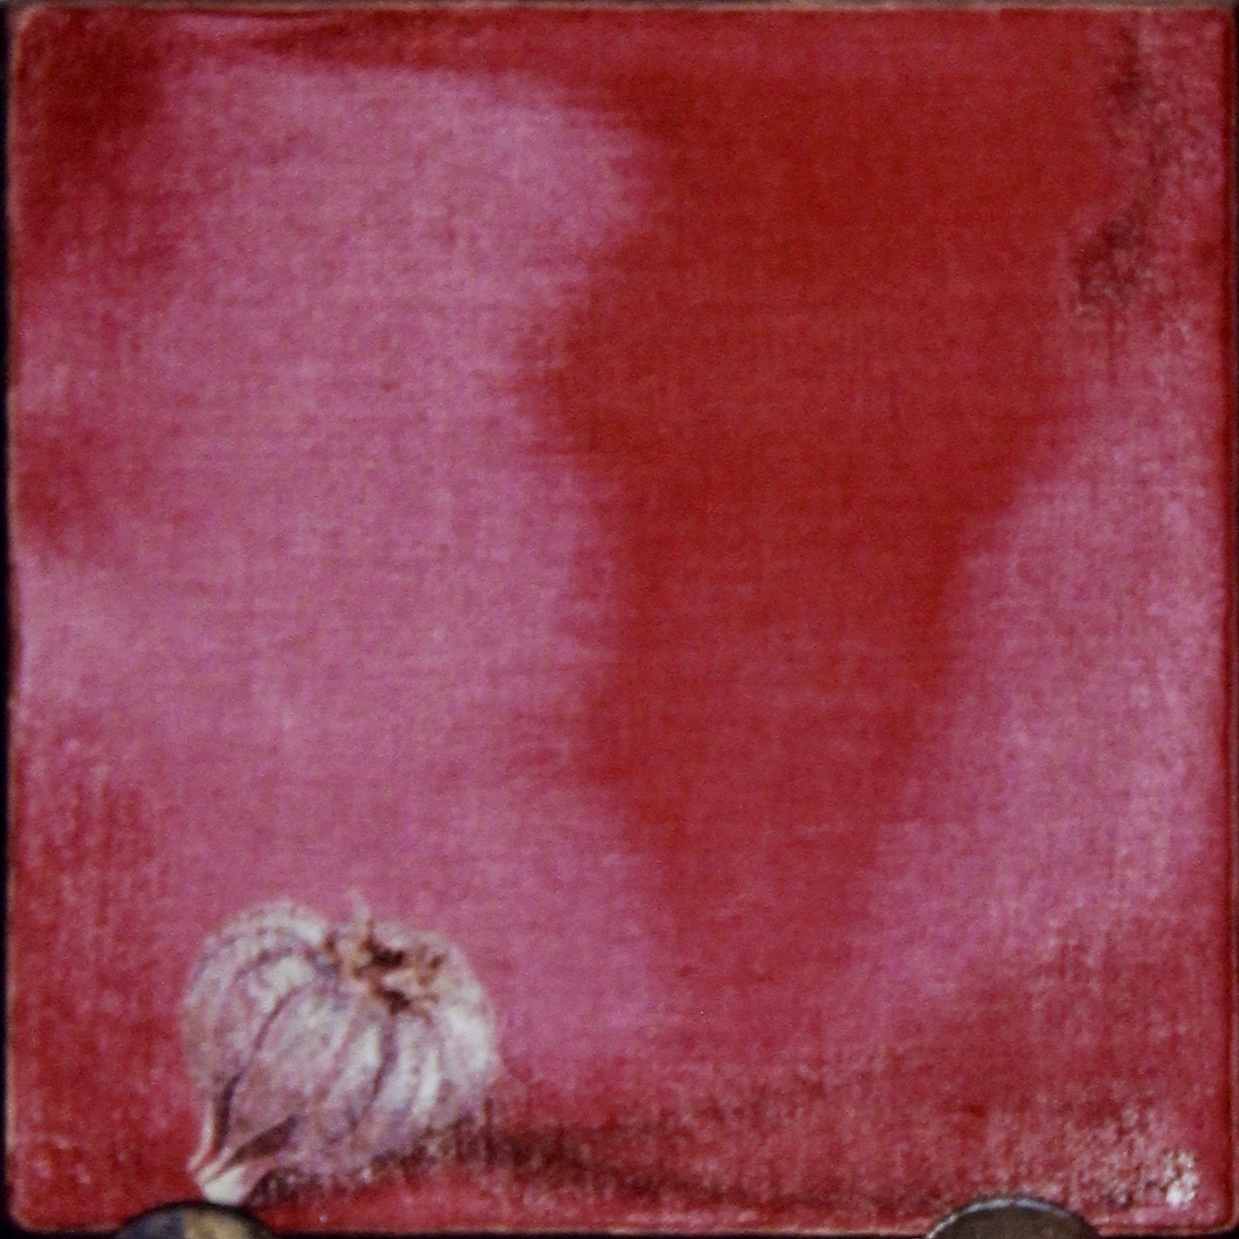 Cebolla -  1997 oil on canvas 30cm x 30cm (sold)